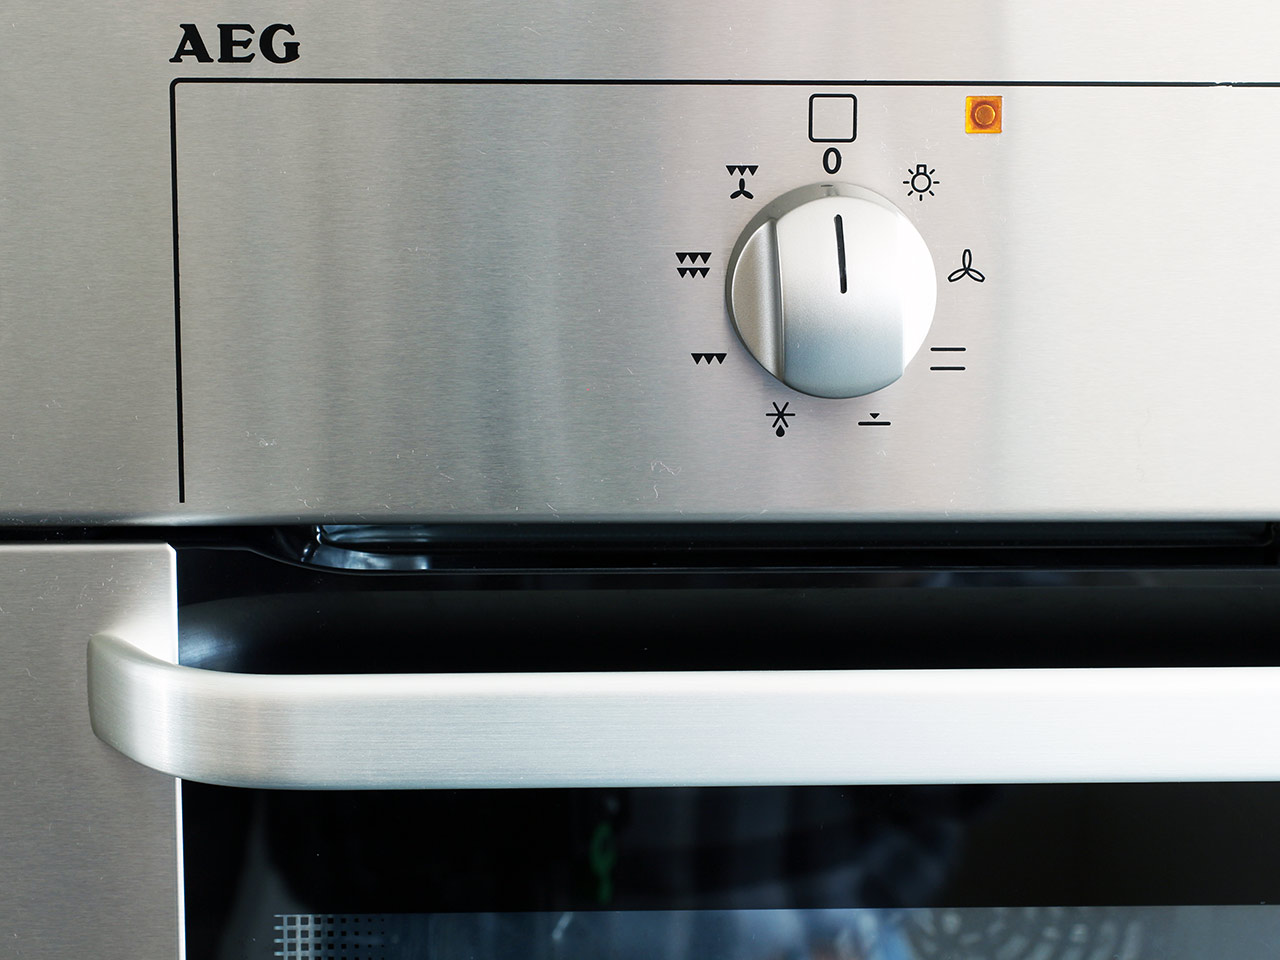 60 cm aeg competence b 3000 1 m einbau backofen edelstahl f r 220 volt ebay. Black Bedroom Furniture Sets. Home Design Ideas